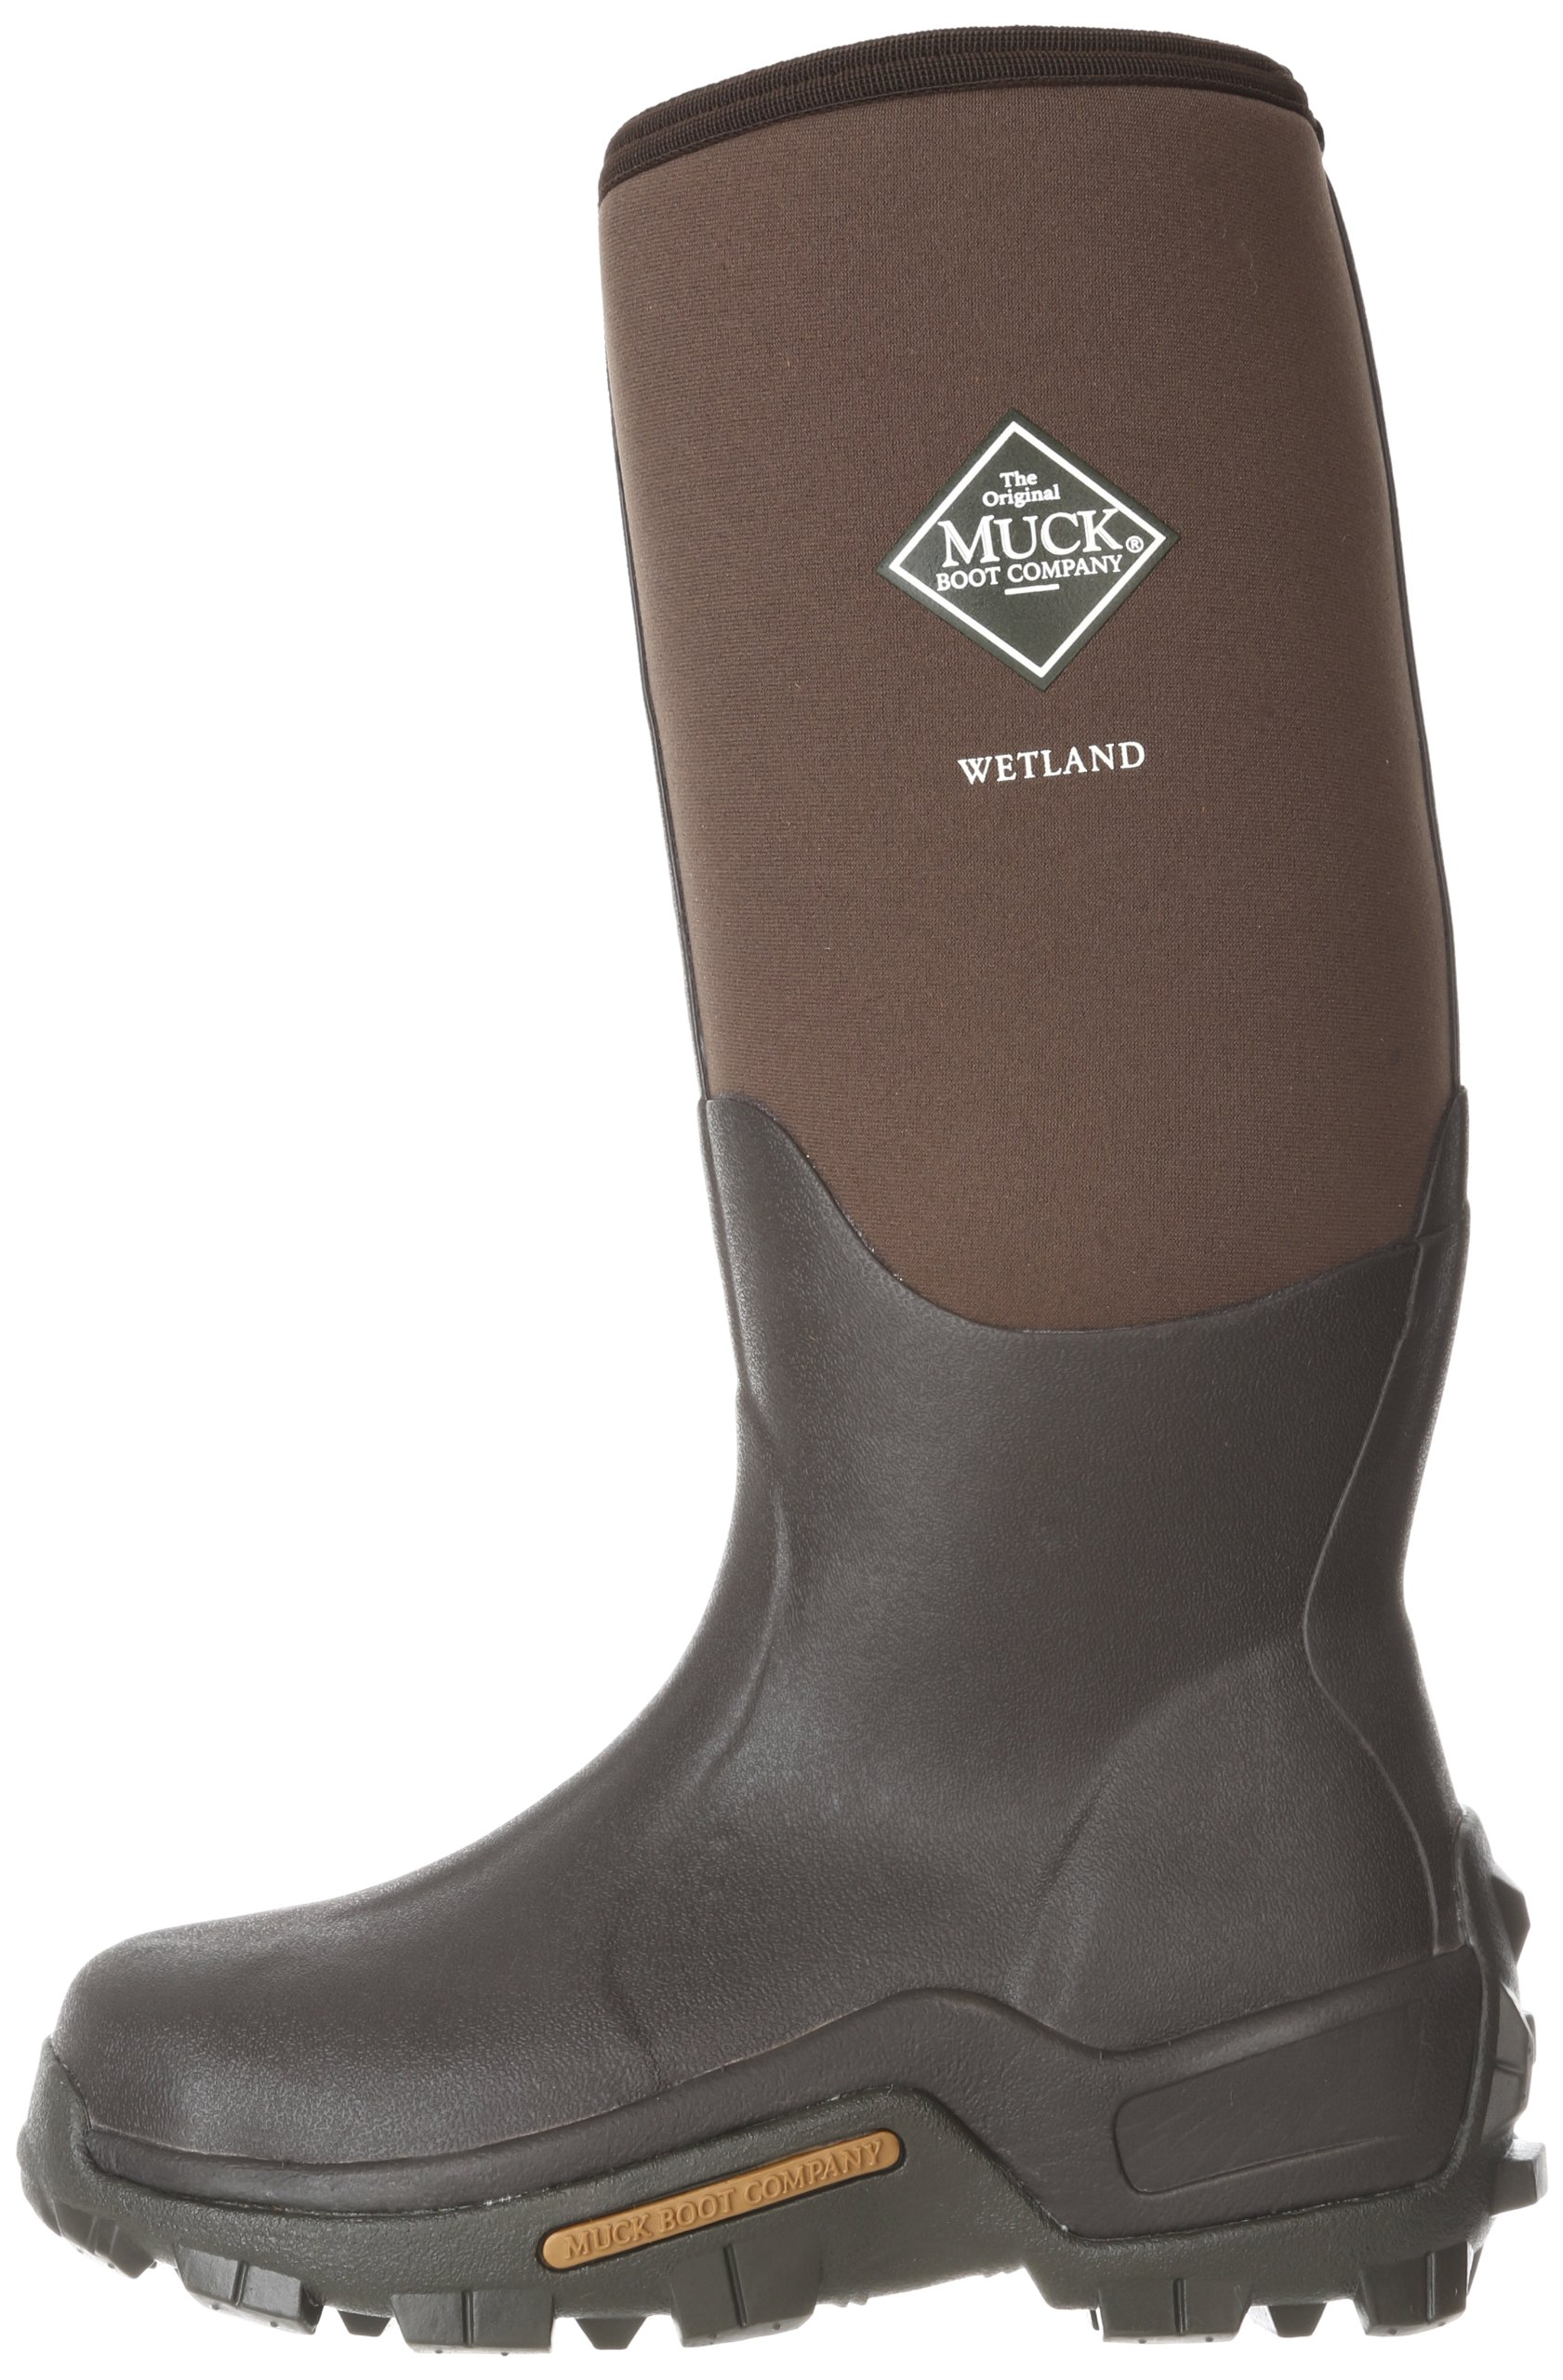 Muck Wetland Rubber Premium Men's Field Boots,Bark,Men's 14 M/Women's 15 M by Muck Boot (Image #5)